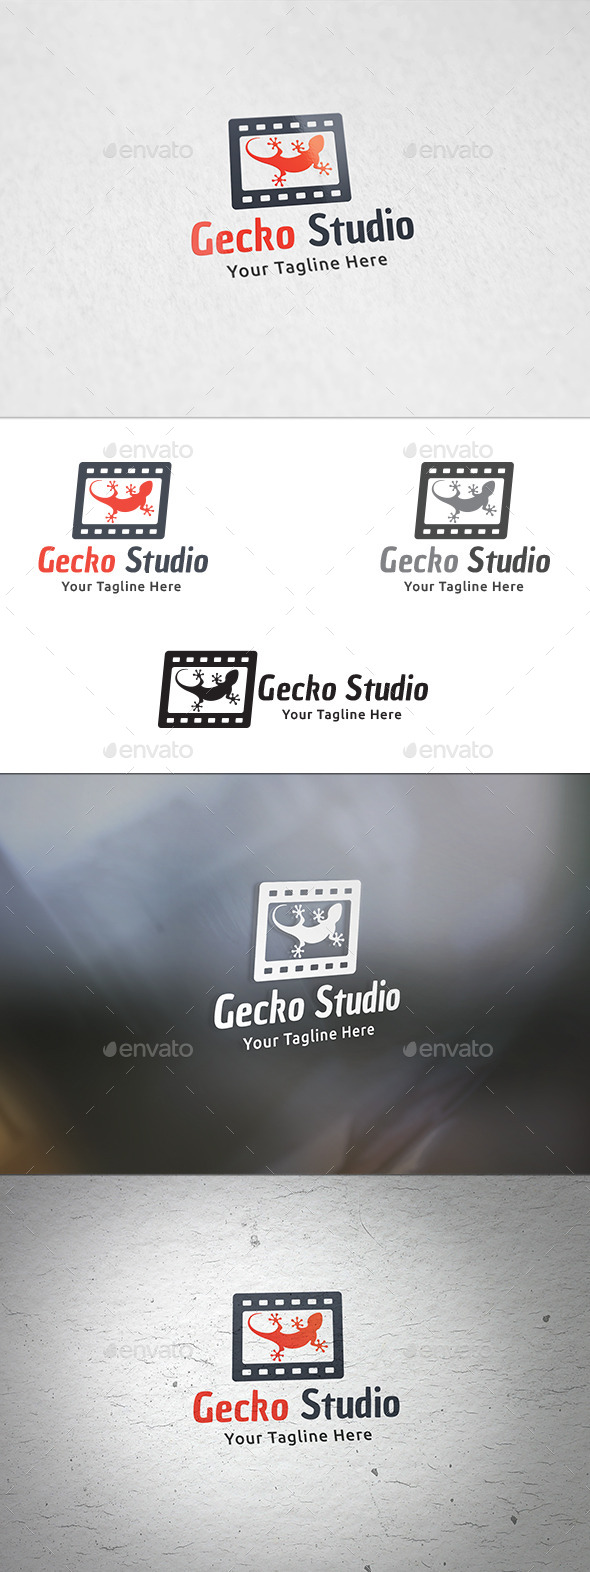 GraphicRiver Gecko Studio Logo Template 8950054